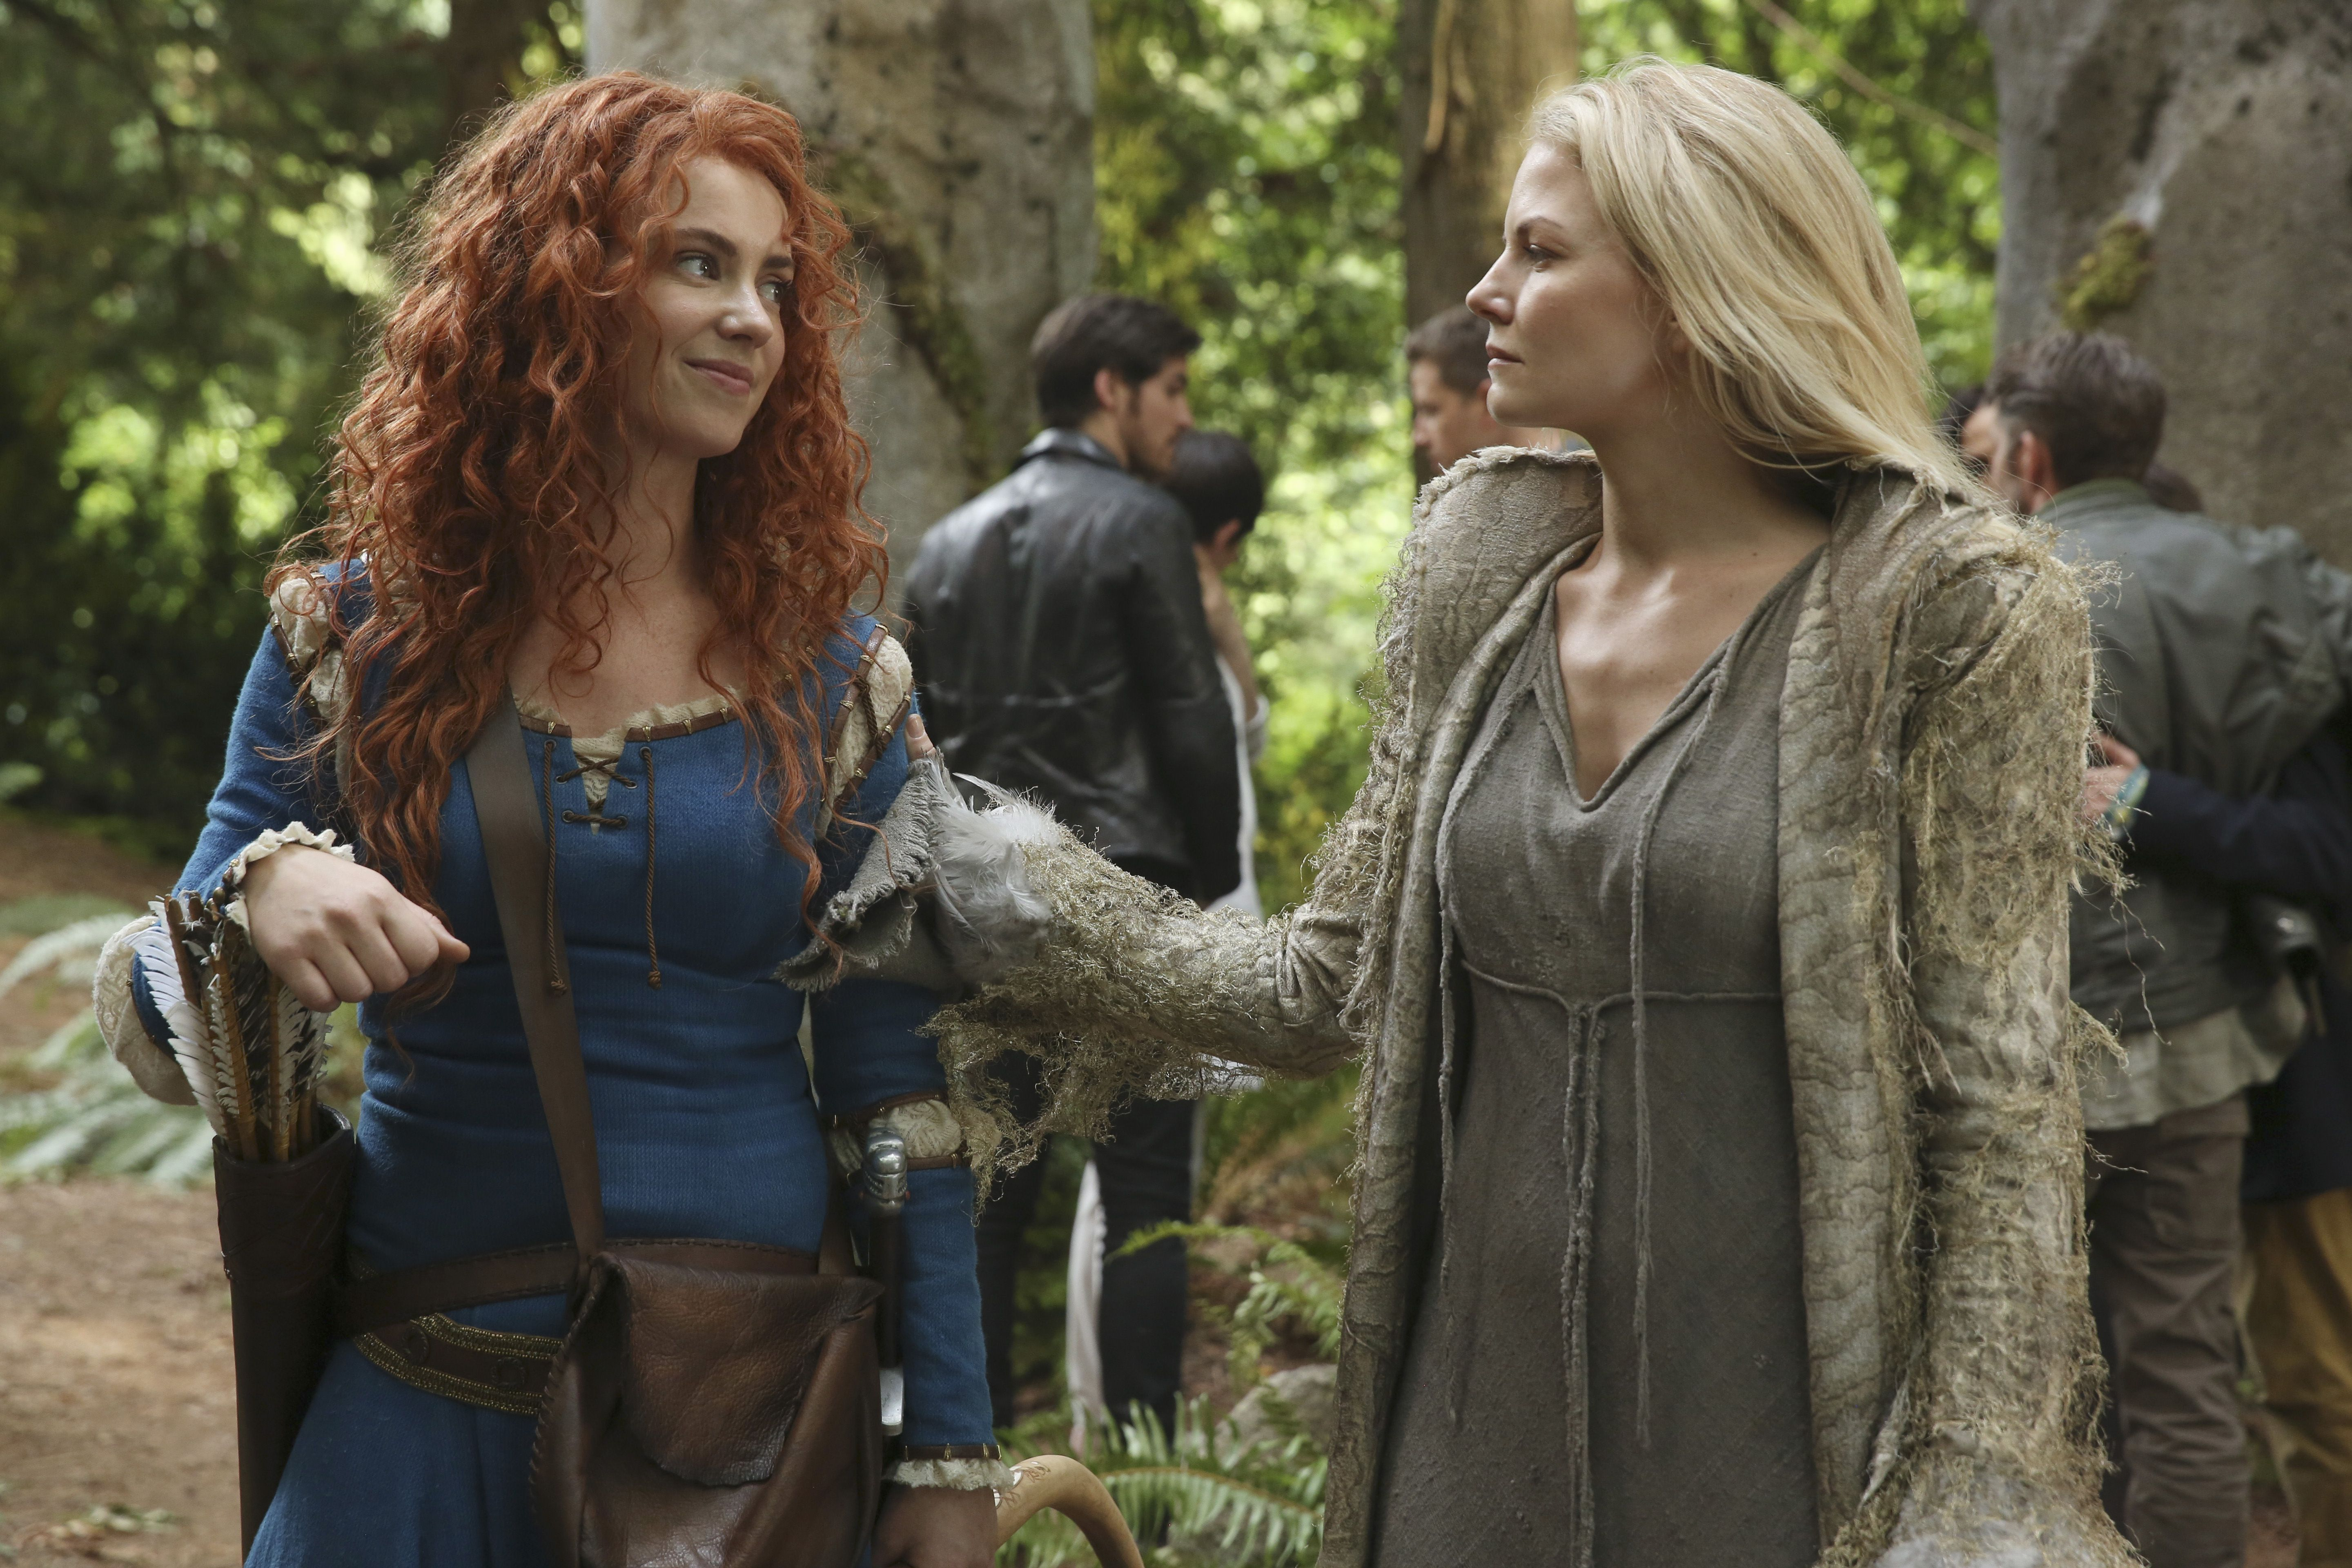 Could this be Arya and Grace?  (Emma and Merida, Once Upon a Time)